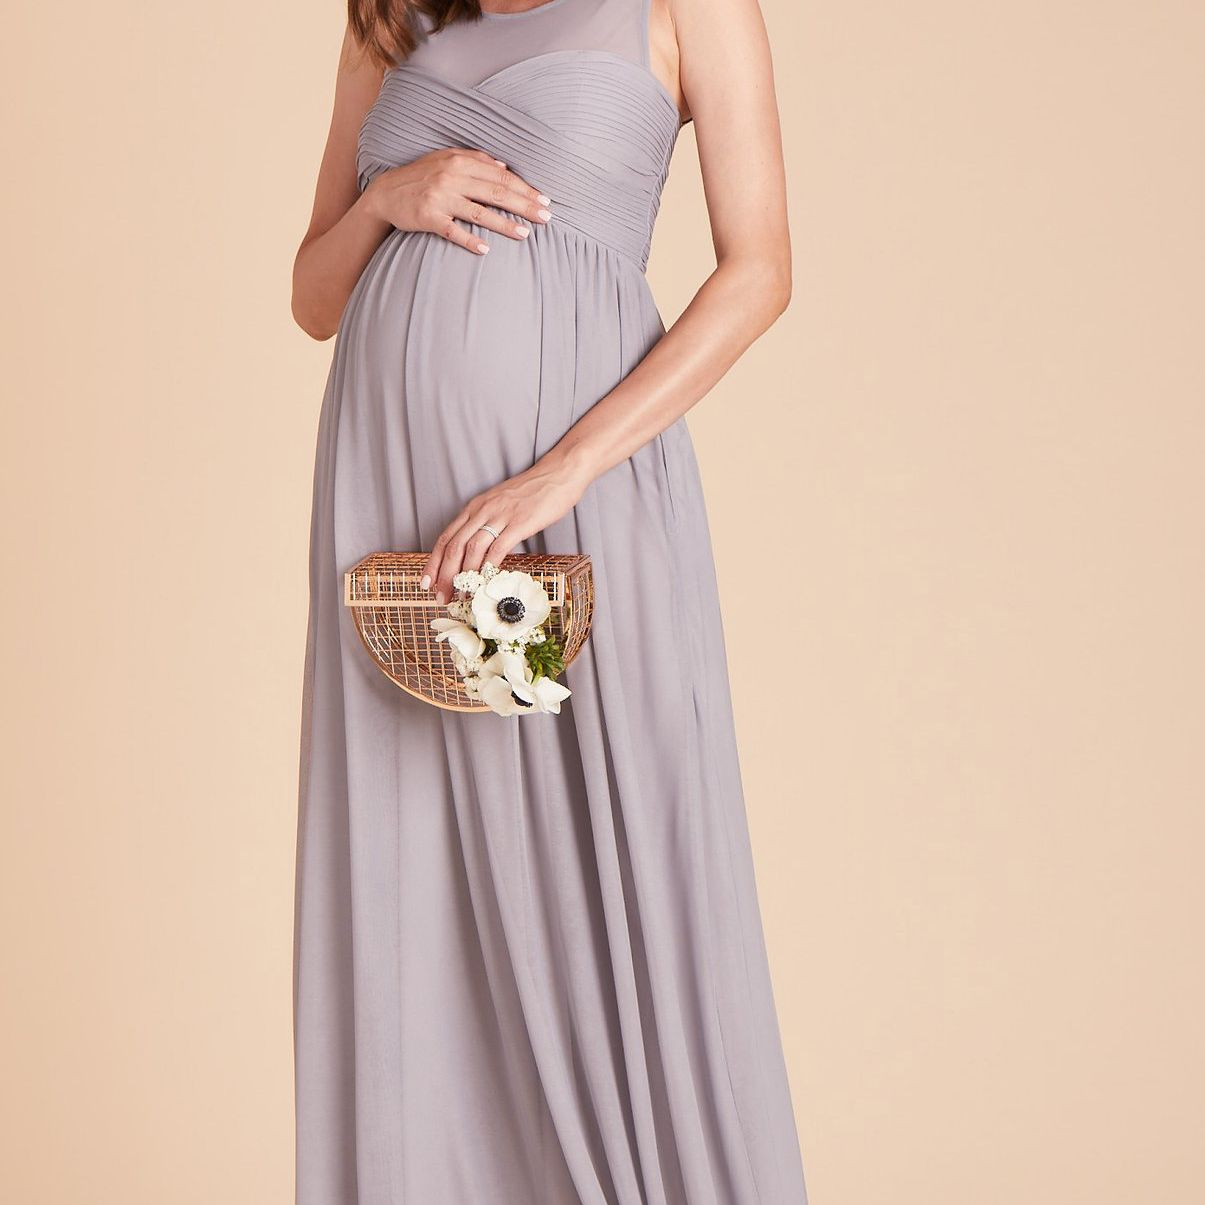 Maternity Wedding Gowns Under 100: The 30 Best Bridesmaids Dresses Under $100 Of 2020